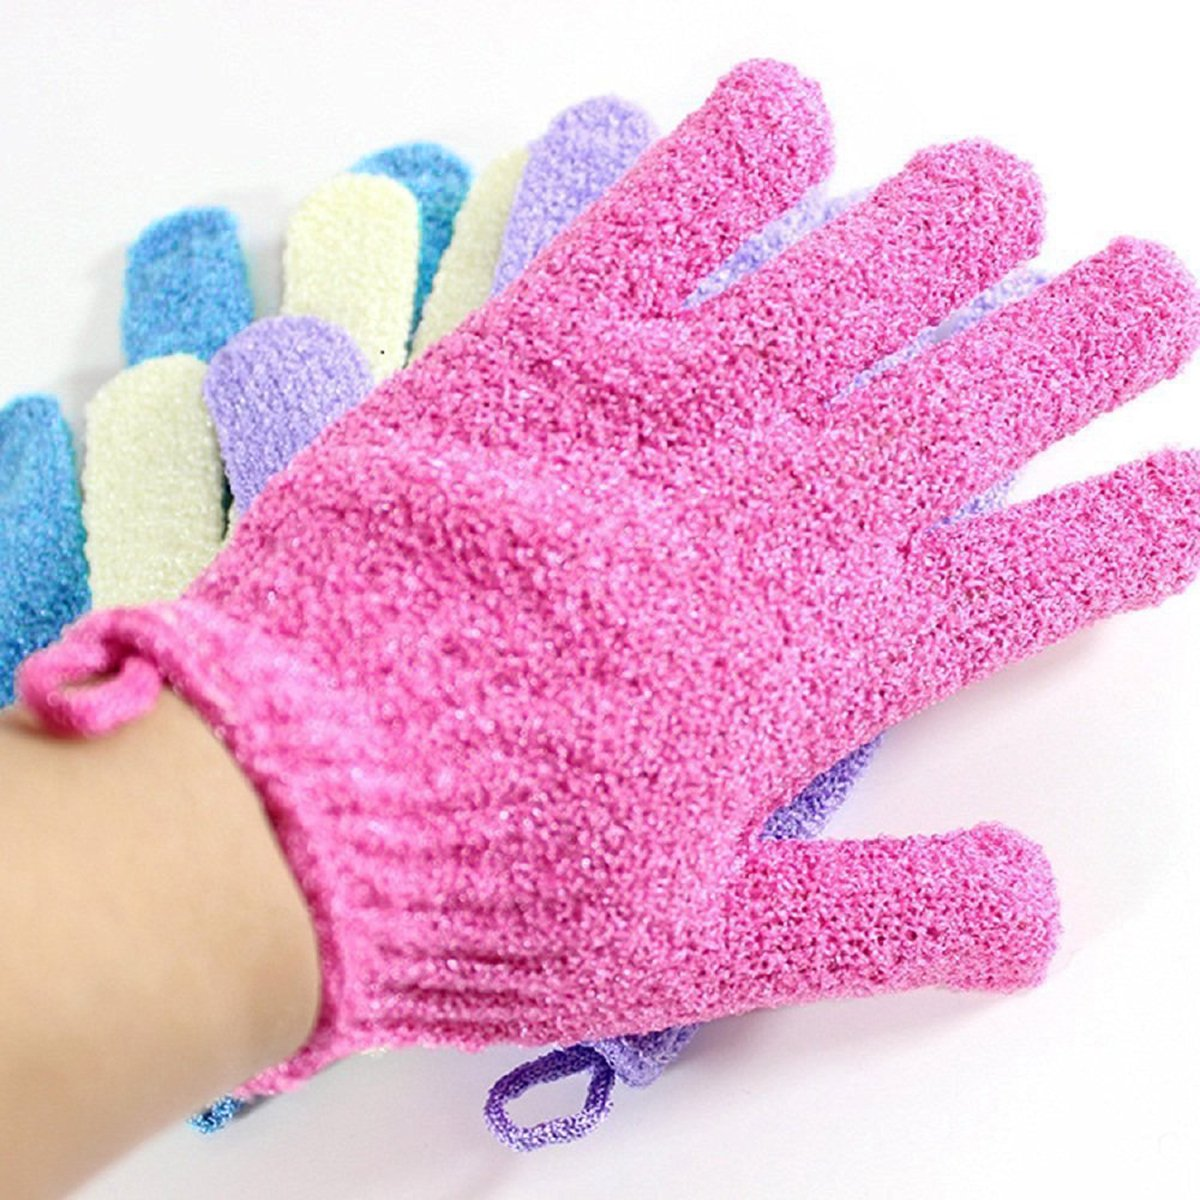 Moonmini® 4 Pair Set Scrubbing Exfoliating Gloves ★ Double Side Durable Nylon Shower Gloves ★ Body Scrub Exfoliator for Men, Women & Kids ★ Bath Scrubber for Acne & Dead Cell